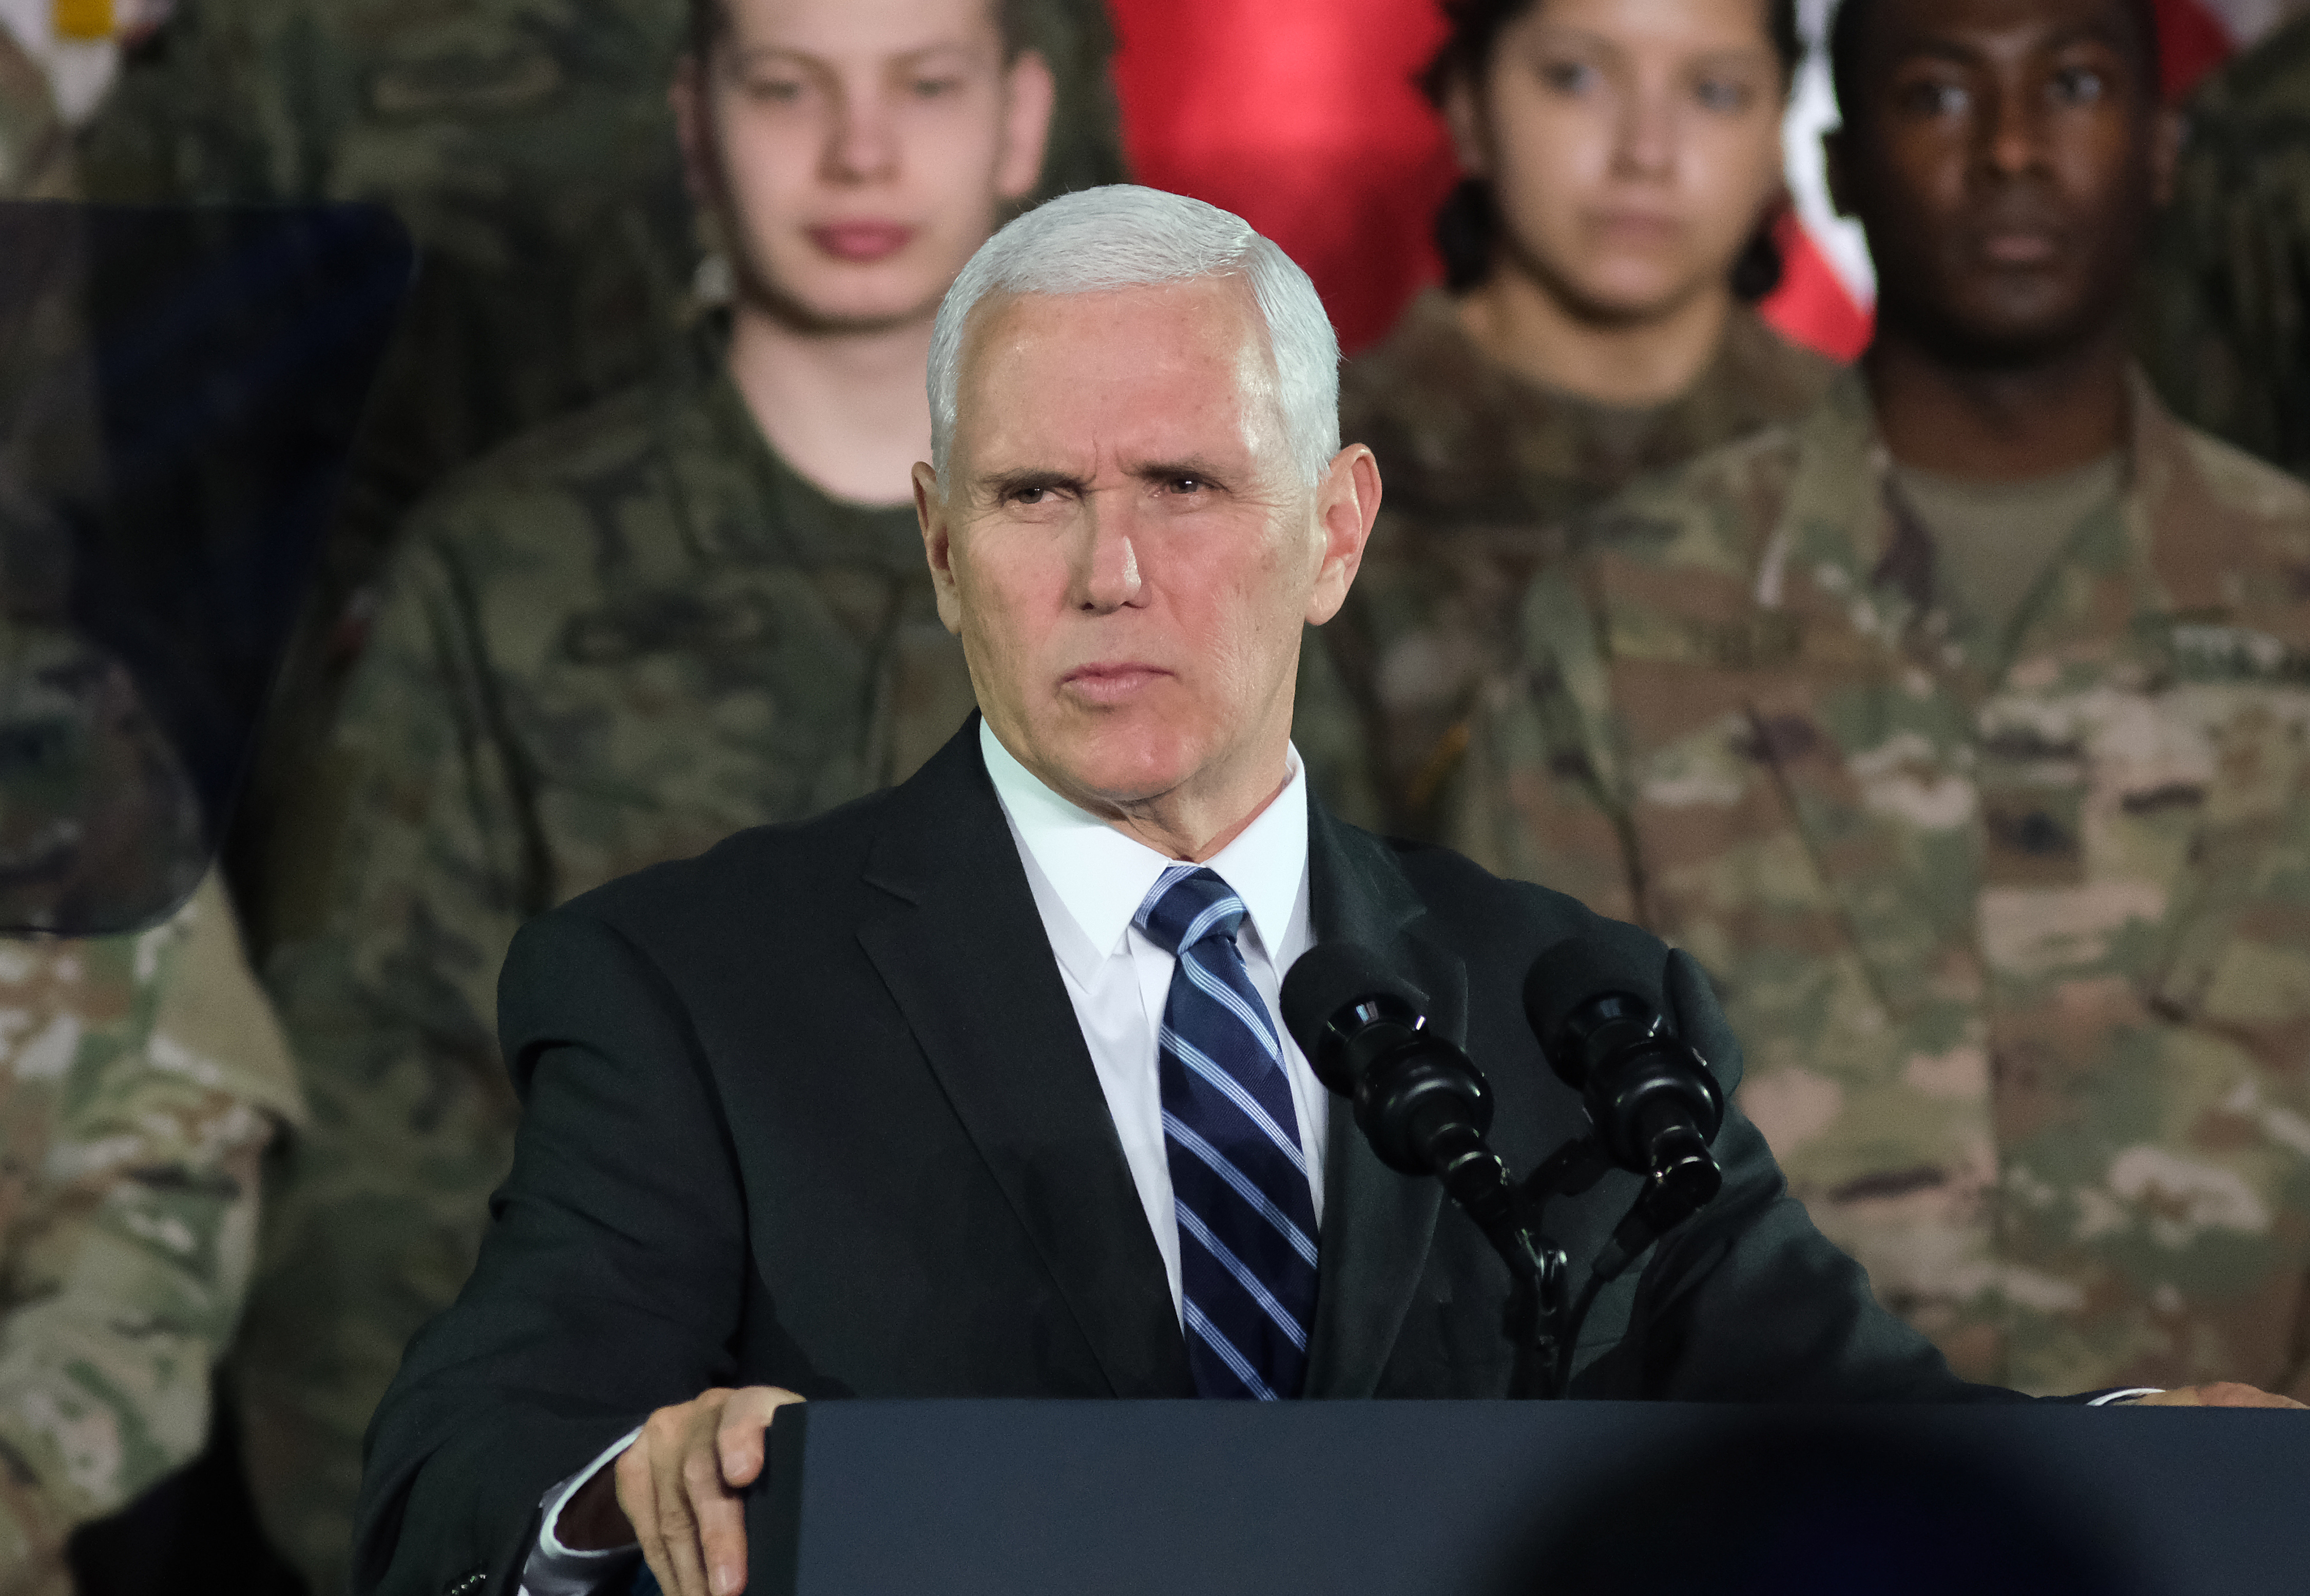 Vice President Mike Pence speaks while visiting Polish and U.S. soldiers at a military base on Feb. 13, 2019 in Warsaw, Poland.